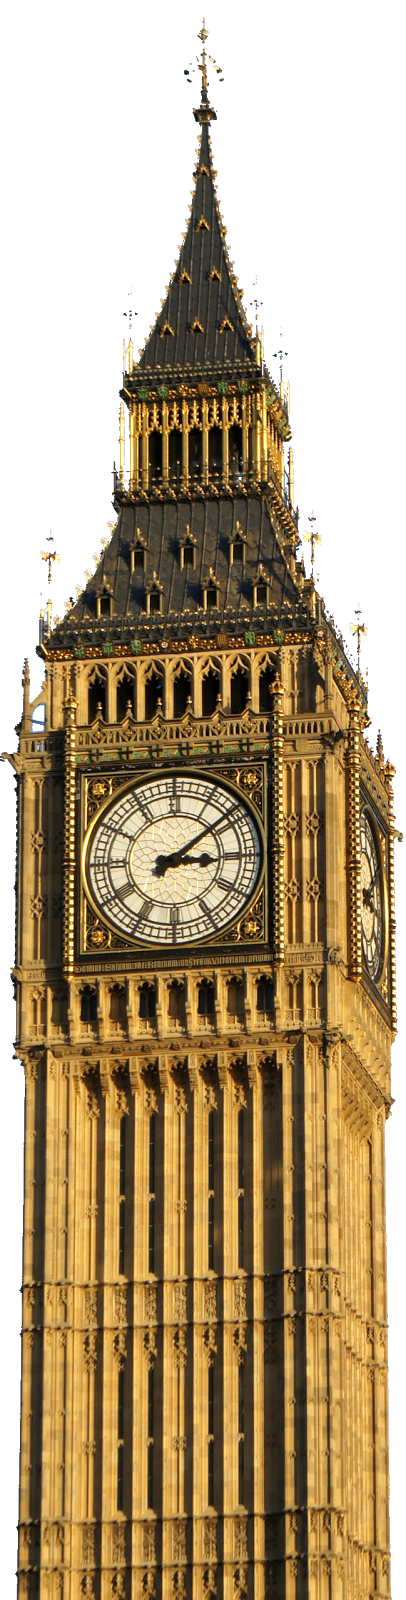 Bell tower at night png. London clock transparent images